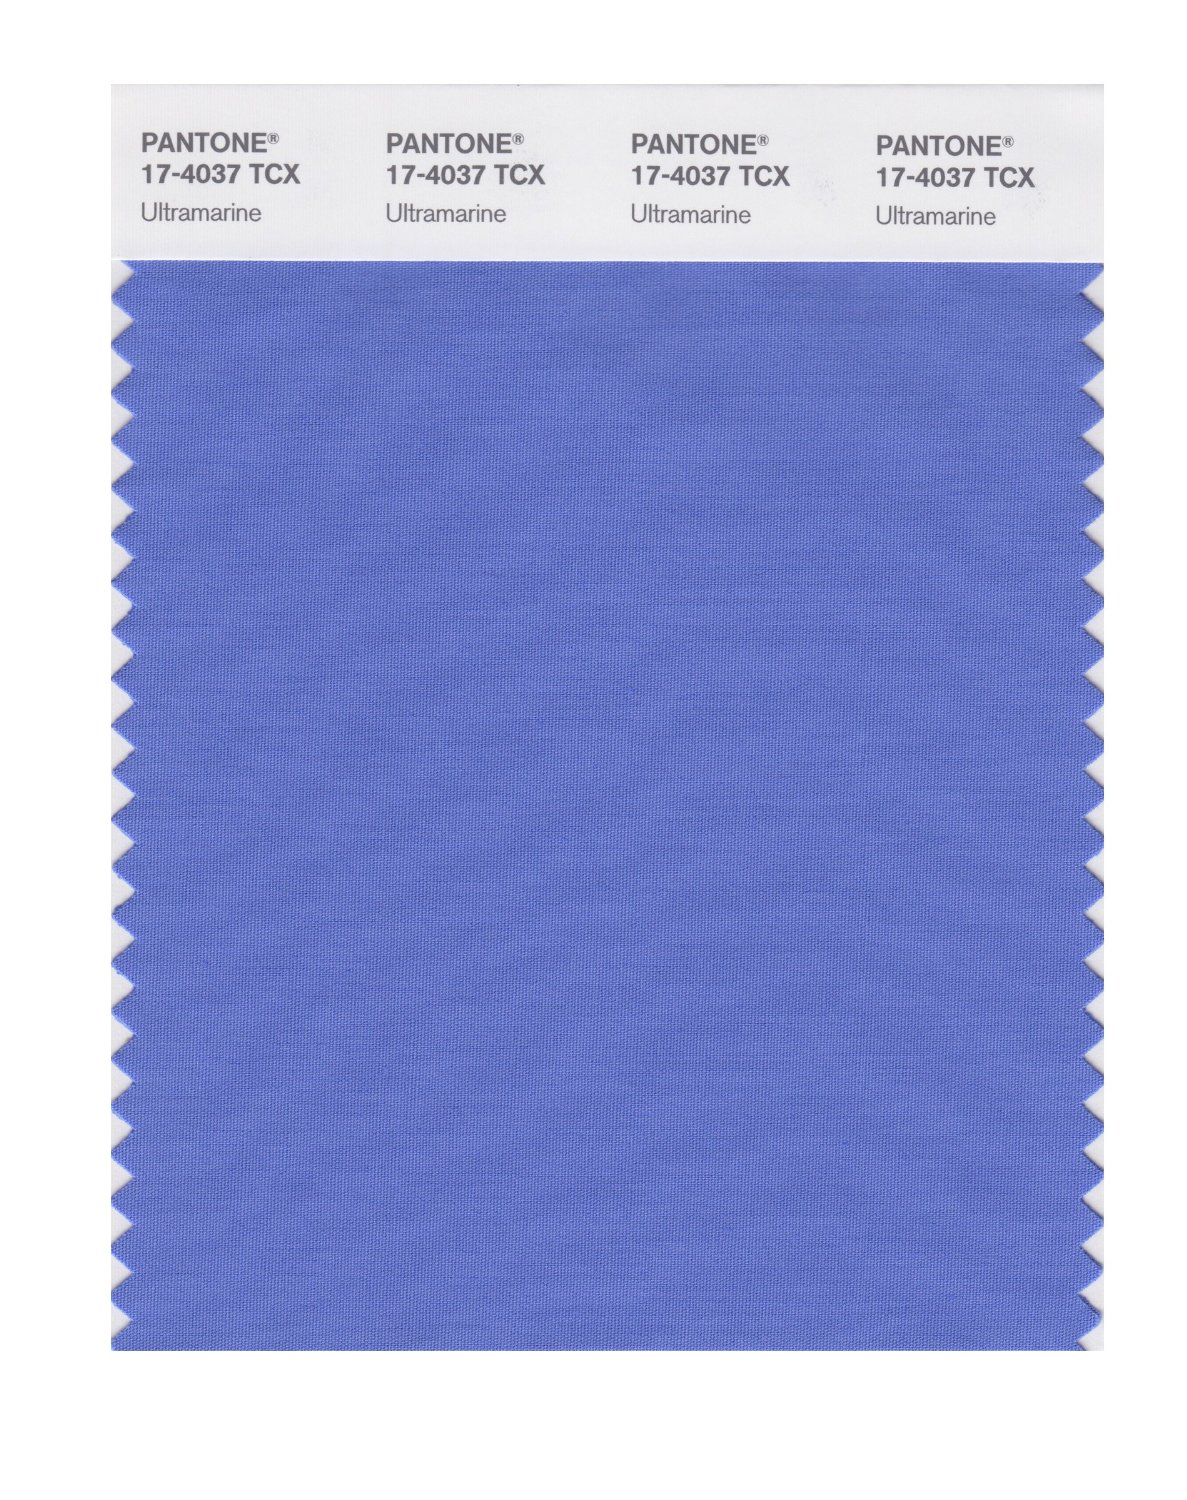 Pantone Smart Swatch 17-4037 Ultramarine